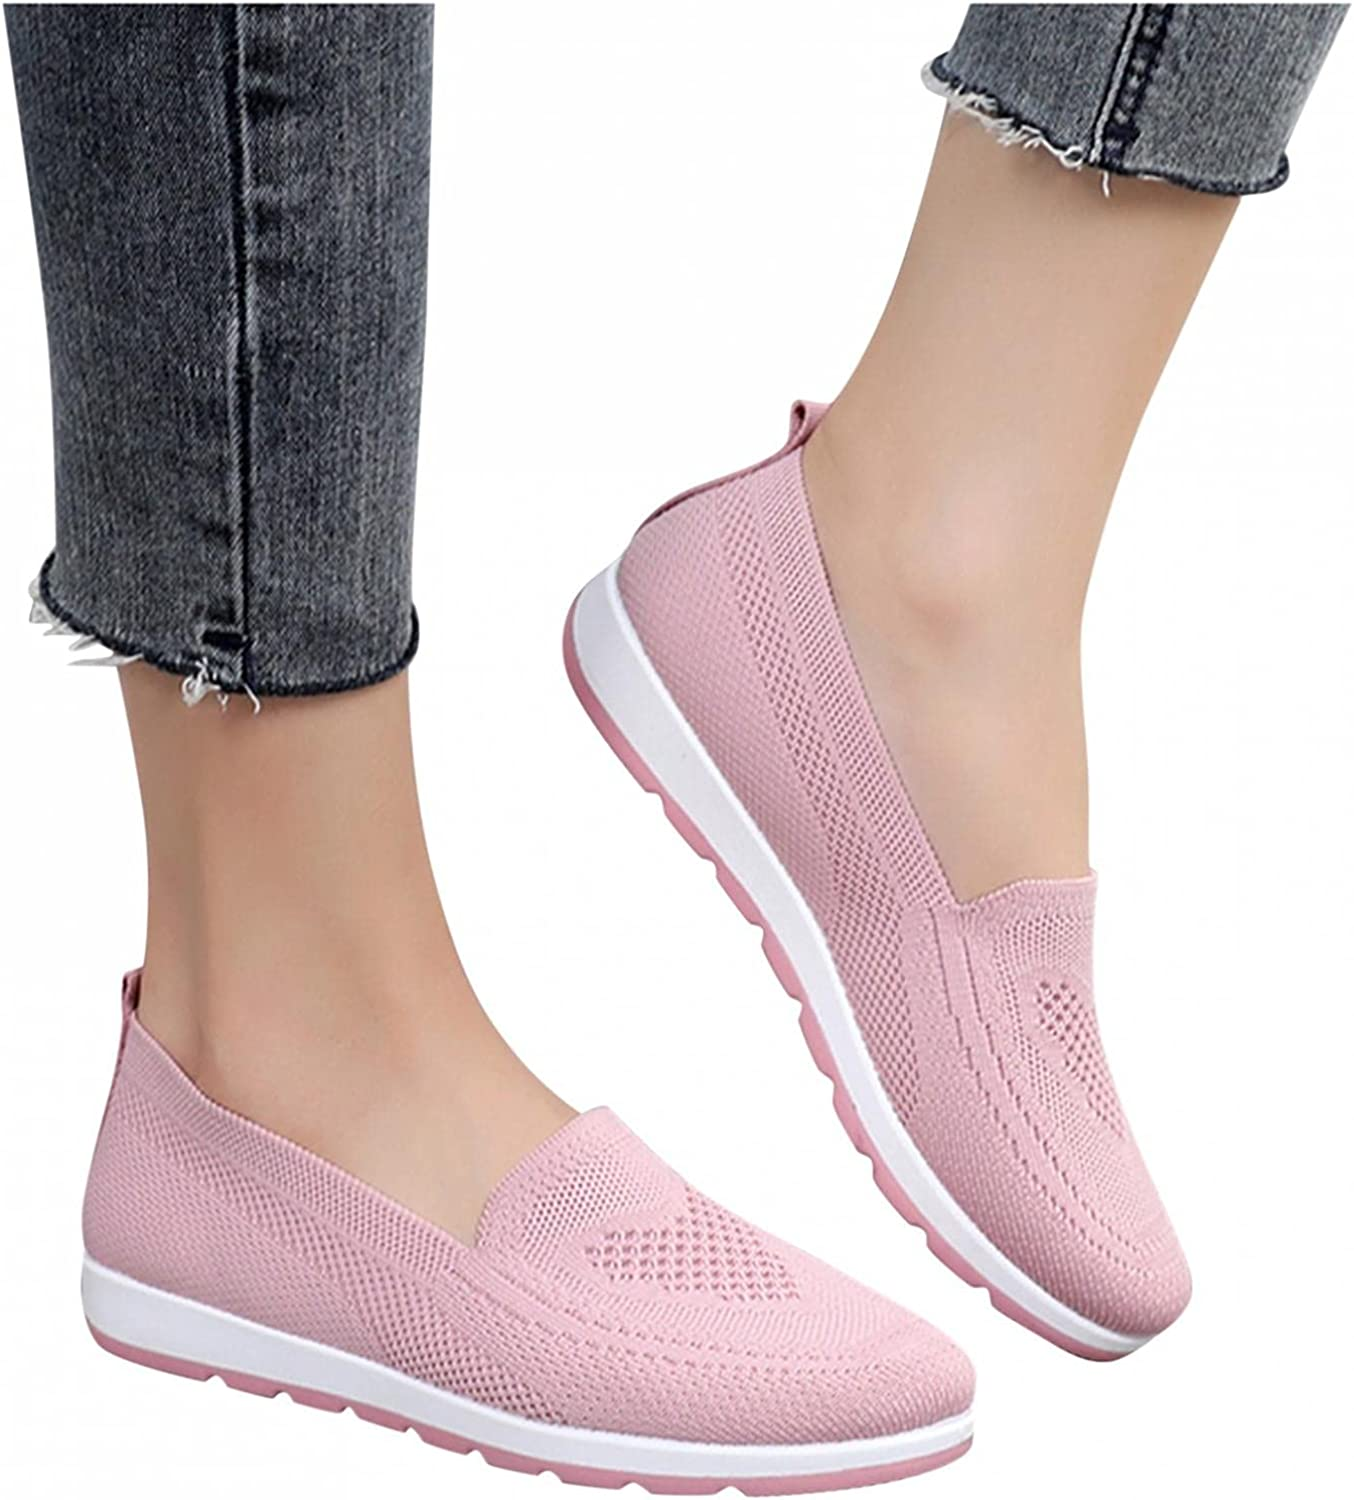 siilsaa Womens At the price Casual Walking Lightweight Max 55% OFF Canvas Sneakers Shoes